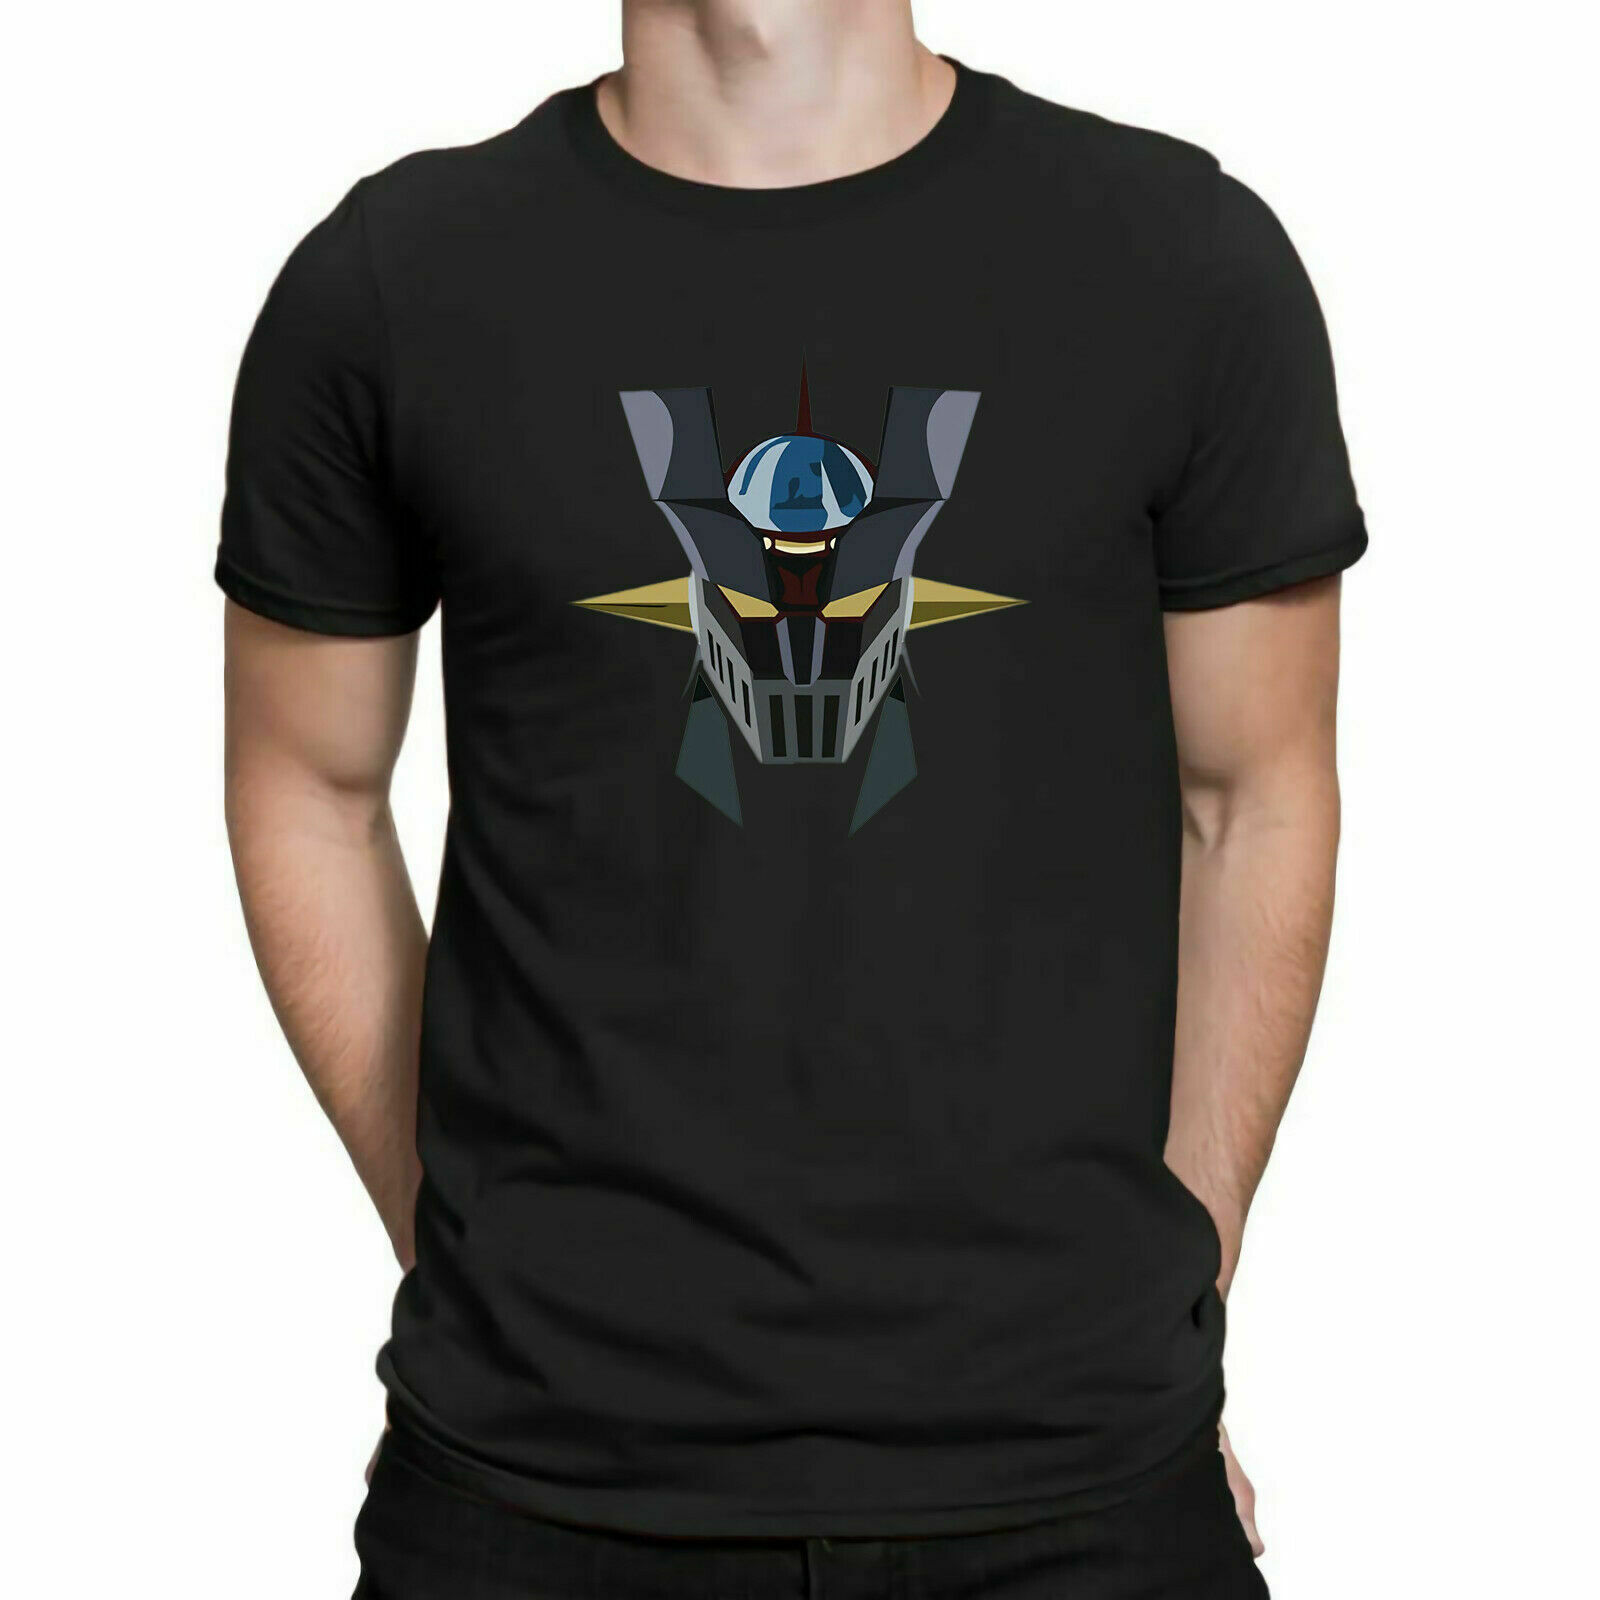 Cotton short mens and womens short sleeve t-shirt by Mazinger Z head anime senti robot